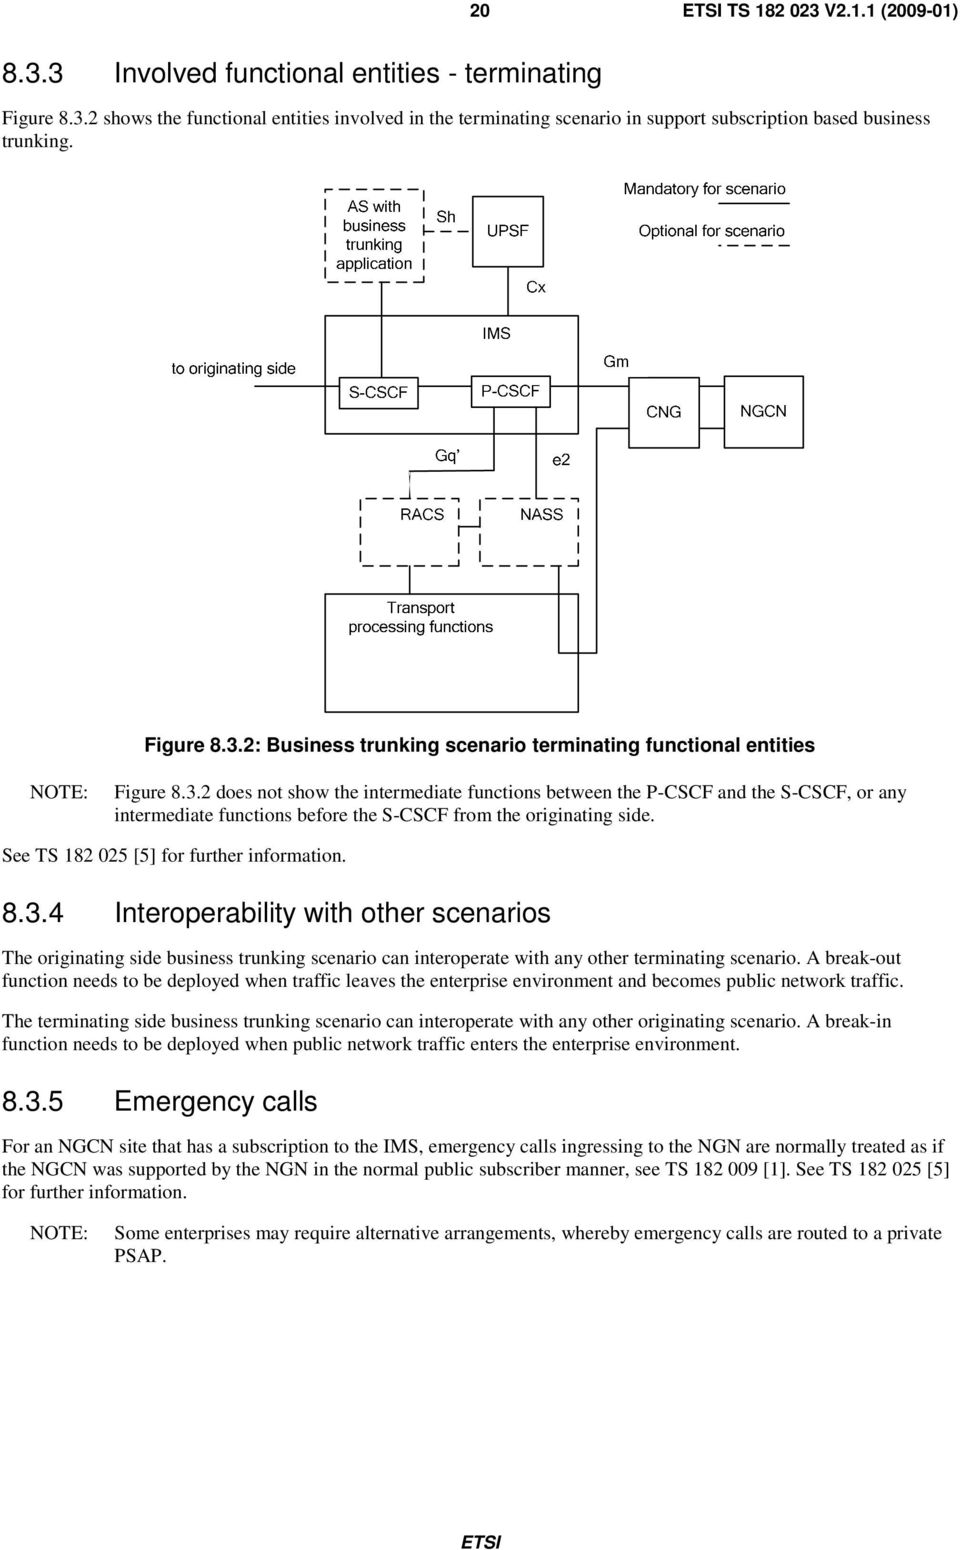 See TS 182 025 [5] for further information. 8.3.4 Interoperability with other scenarios The originating side business trunking scenario can interoperate with any other terminating scenario.